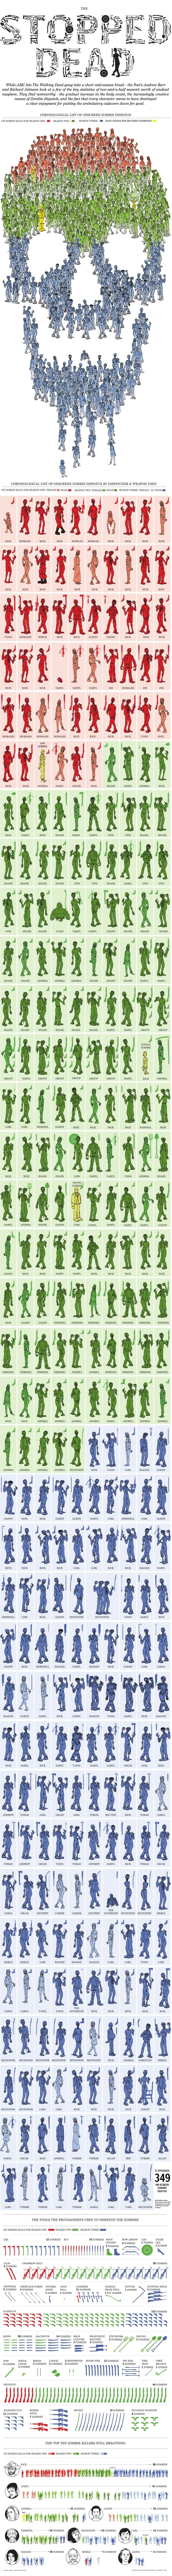 the_walking_dead_iconography.jpg